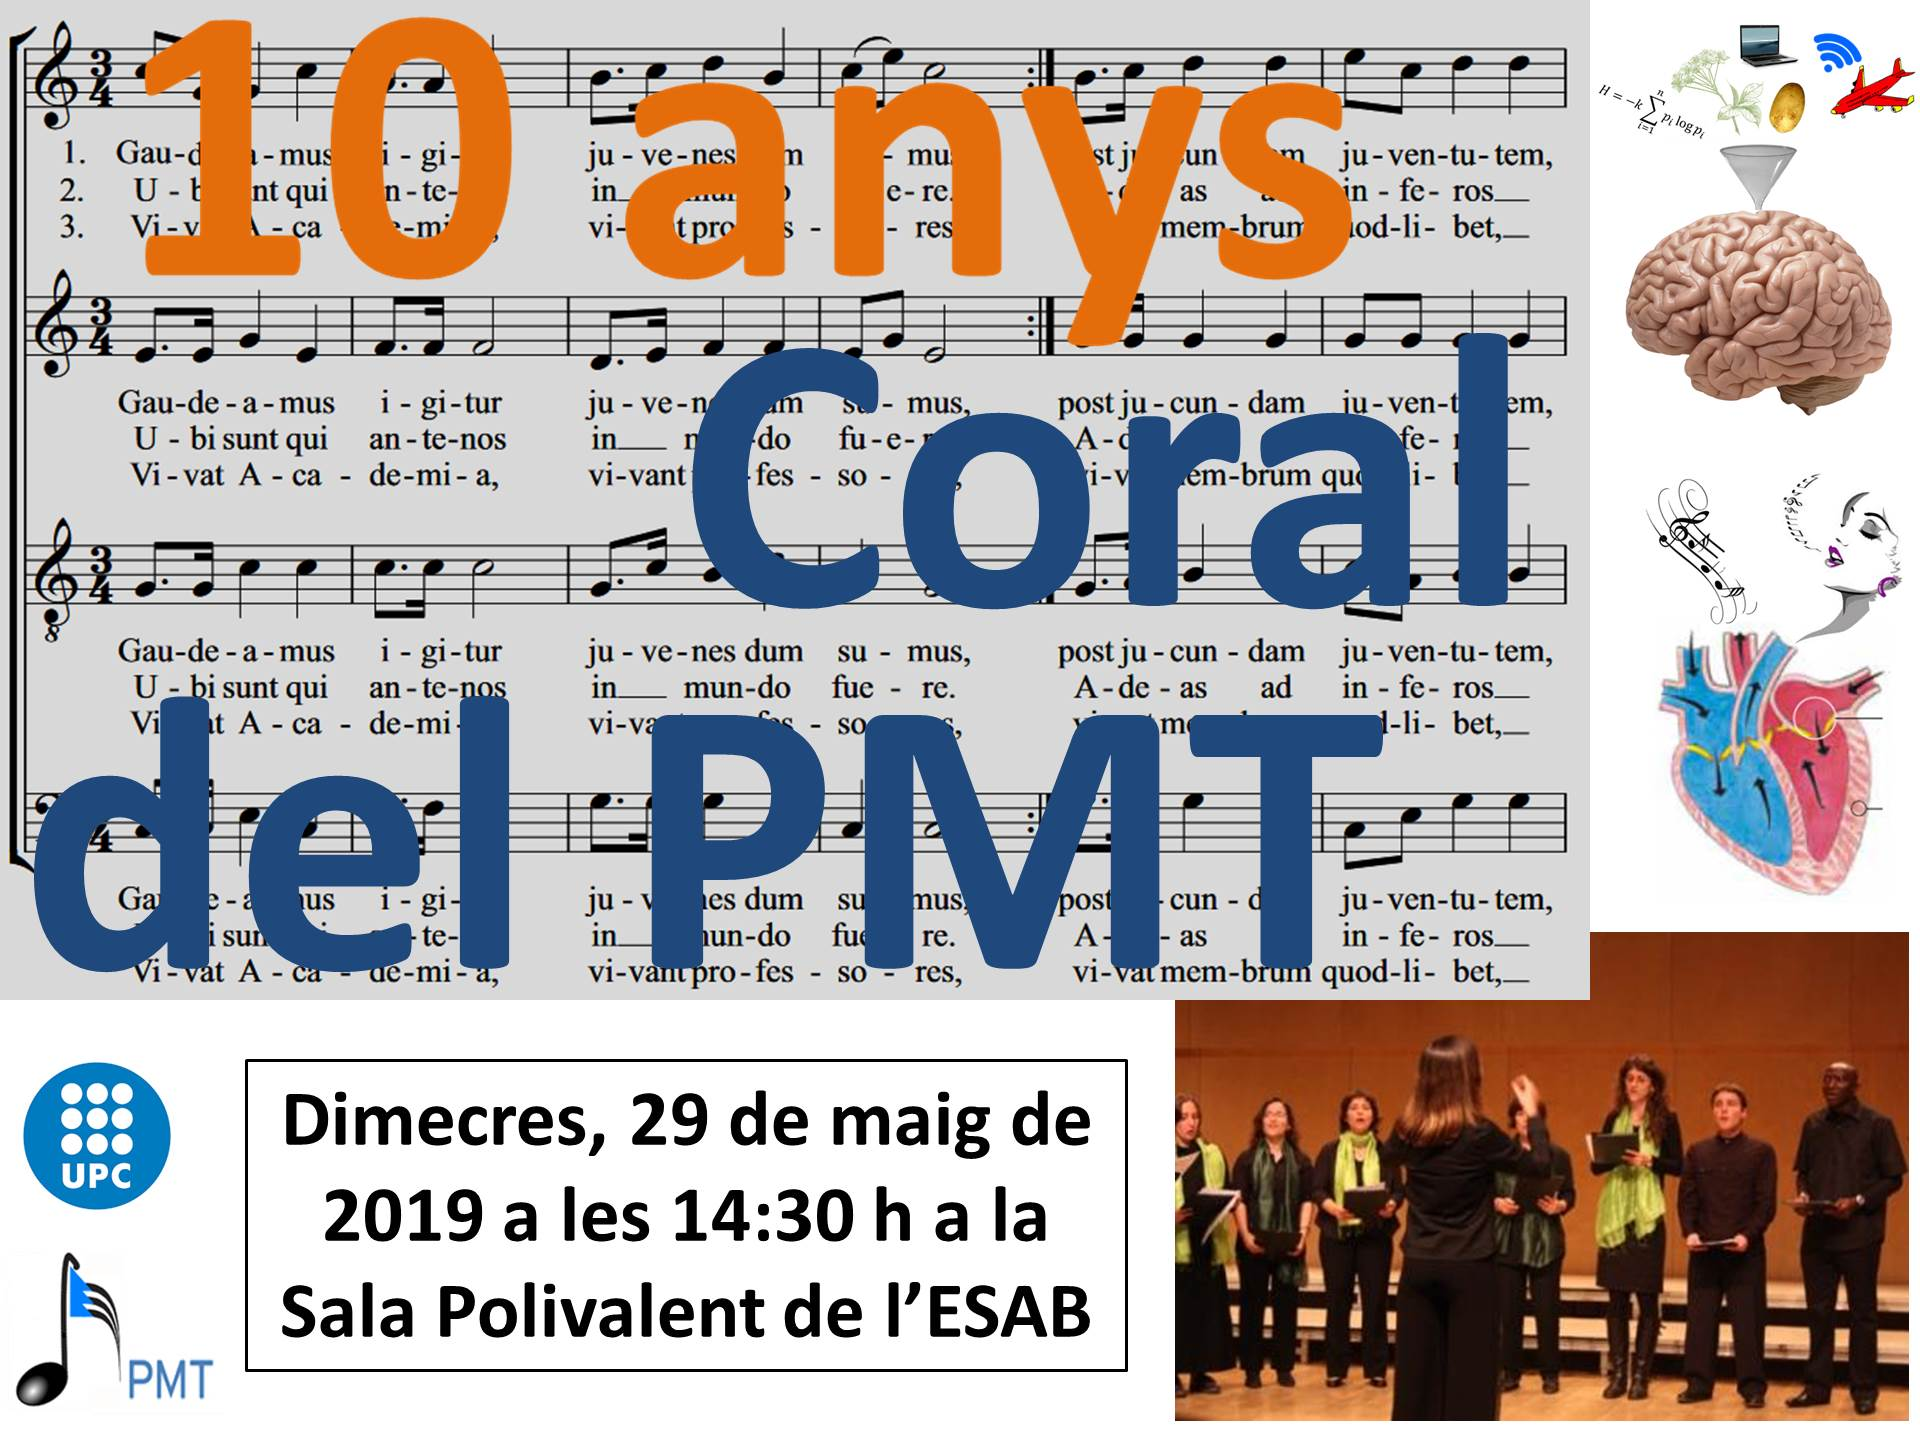 Cartell 10 anys_coral PMT.jpg